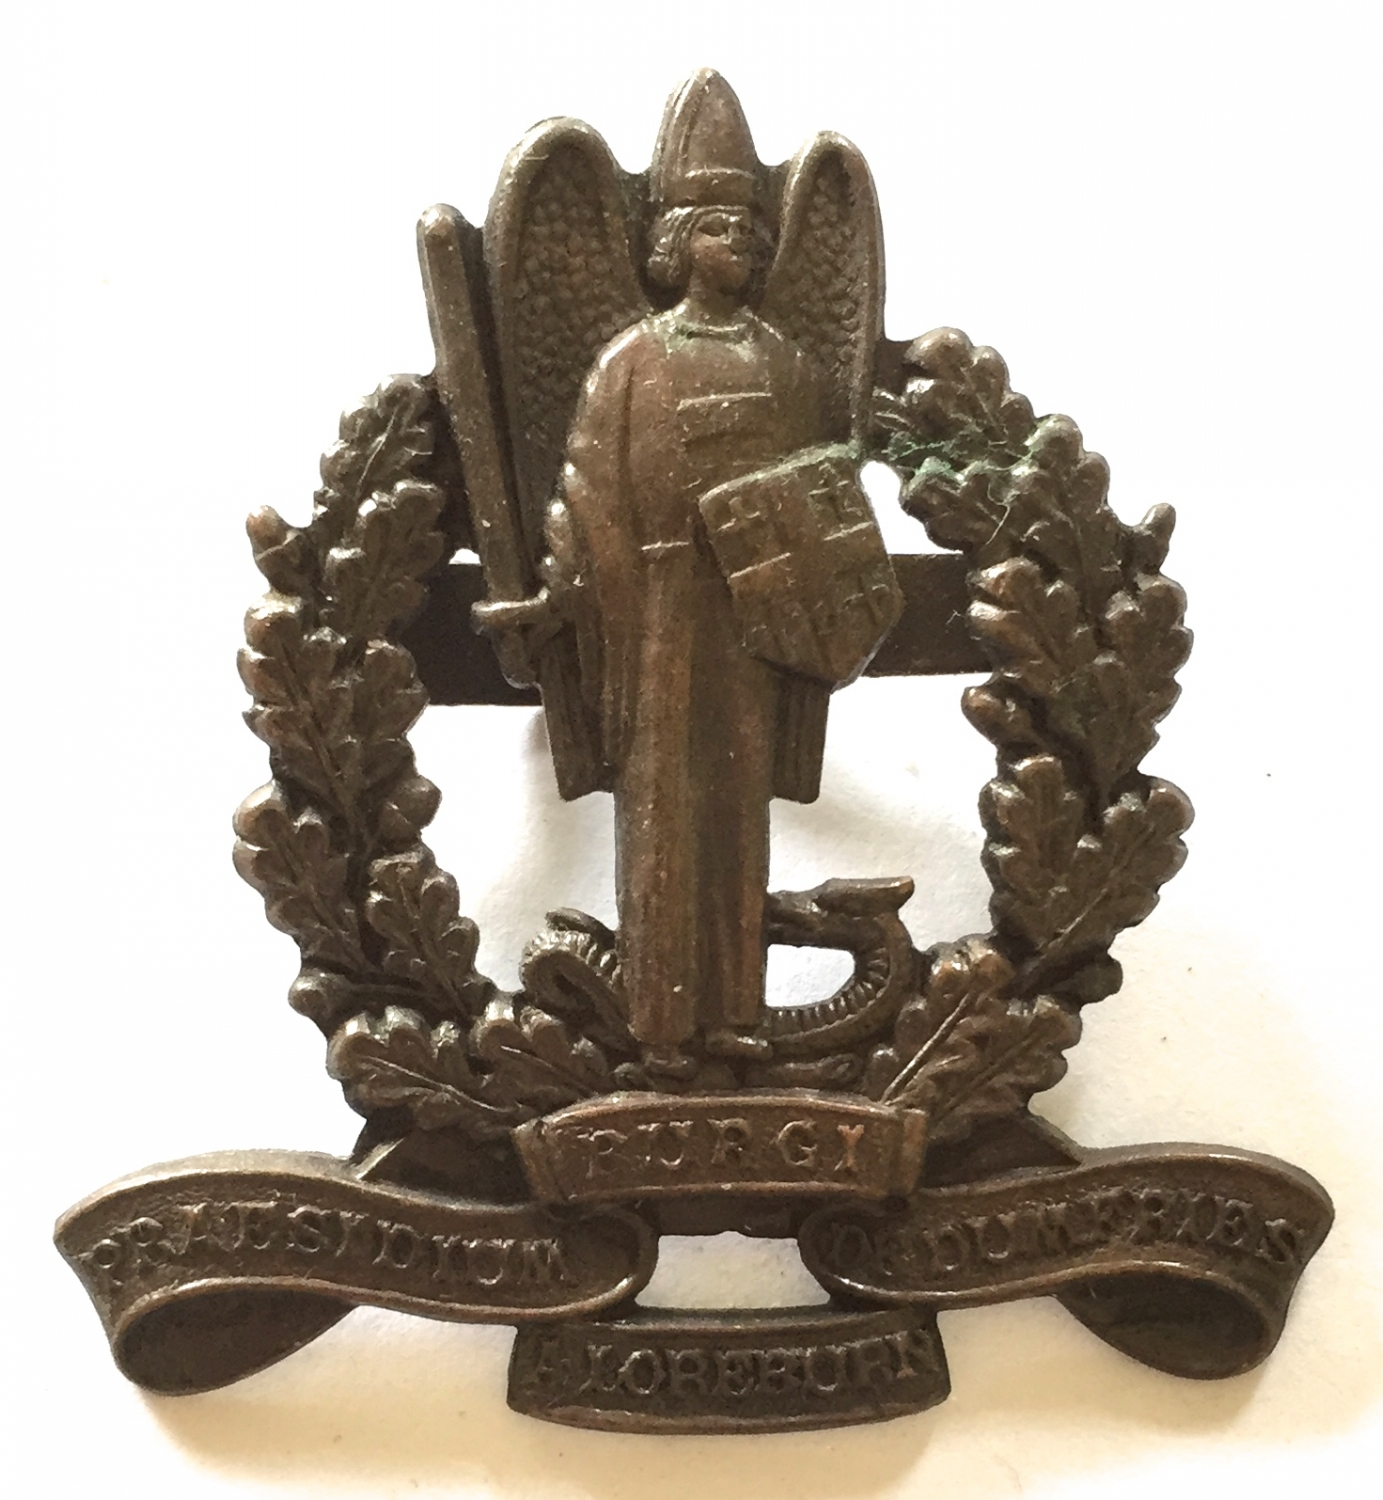 Dunfries-shire VTC rare WW1 bronze cap badge.